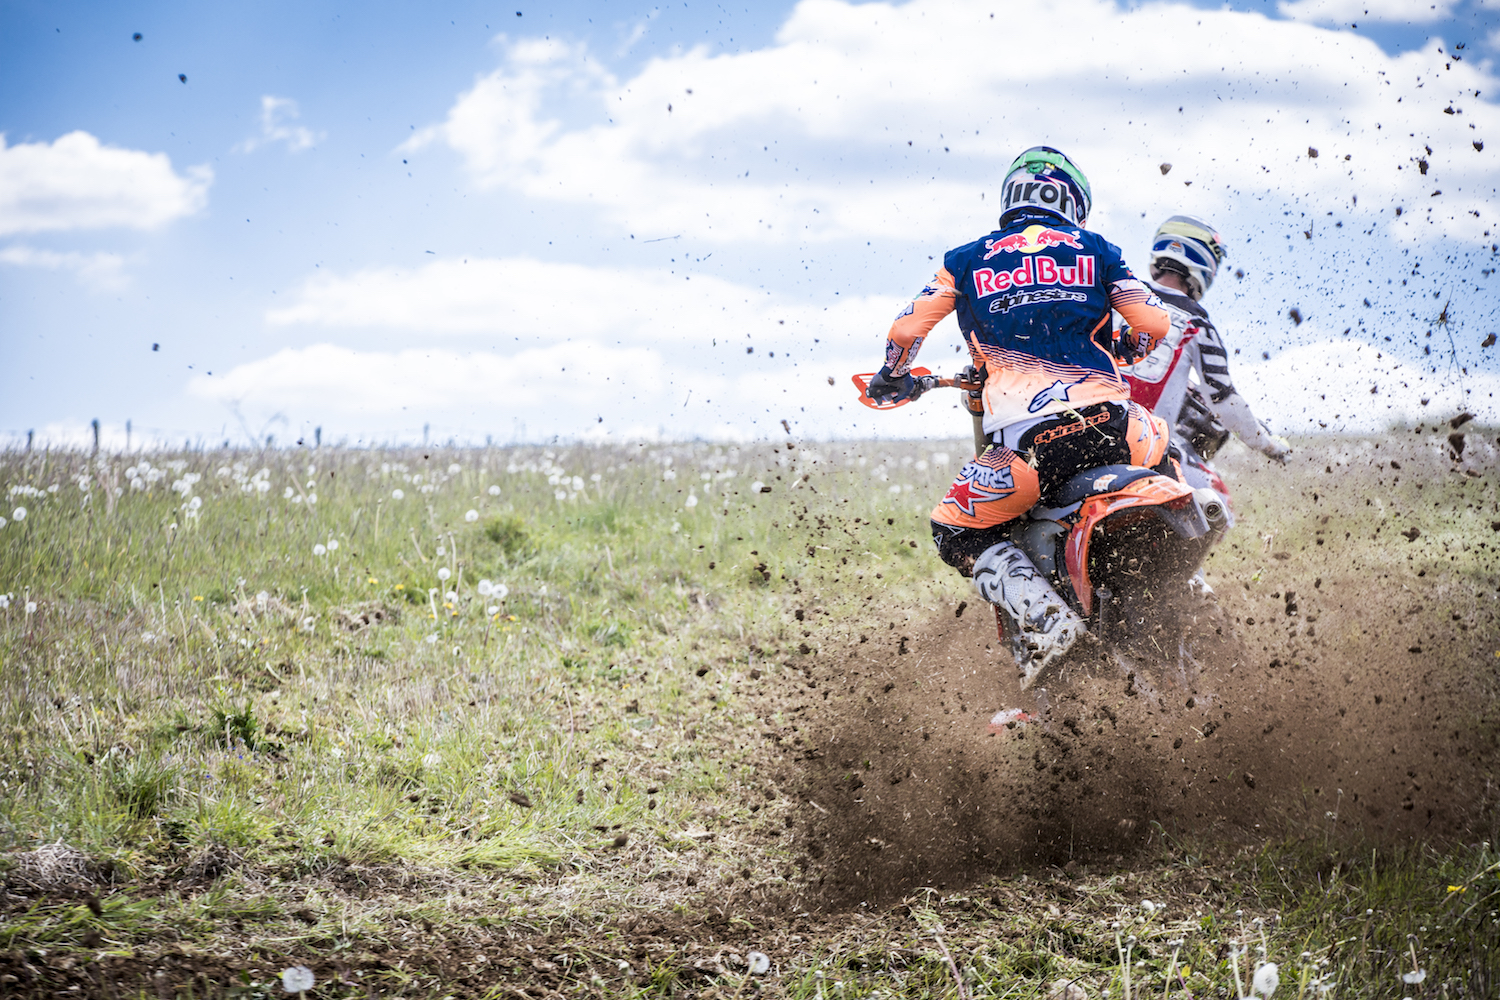 Enduro Top - Antoine MEO